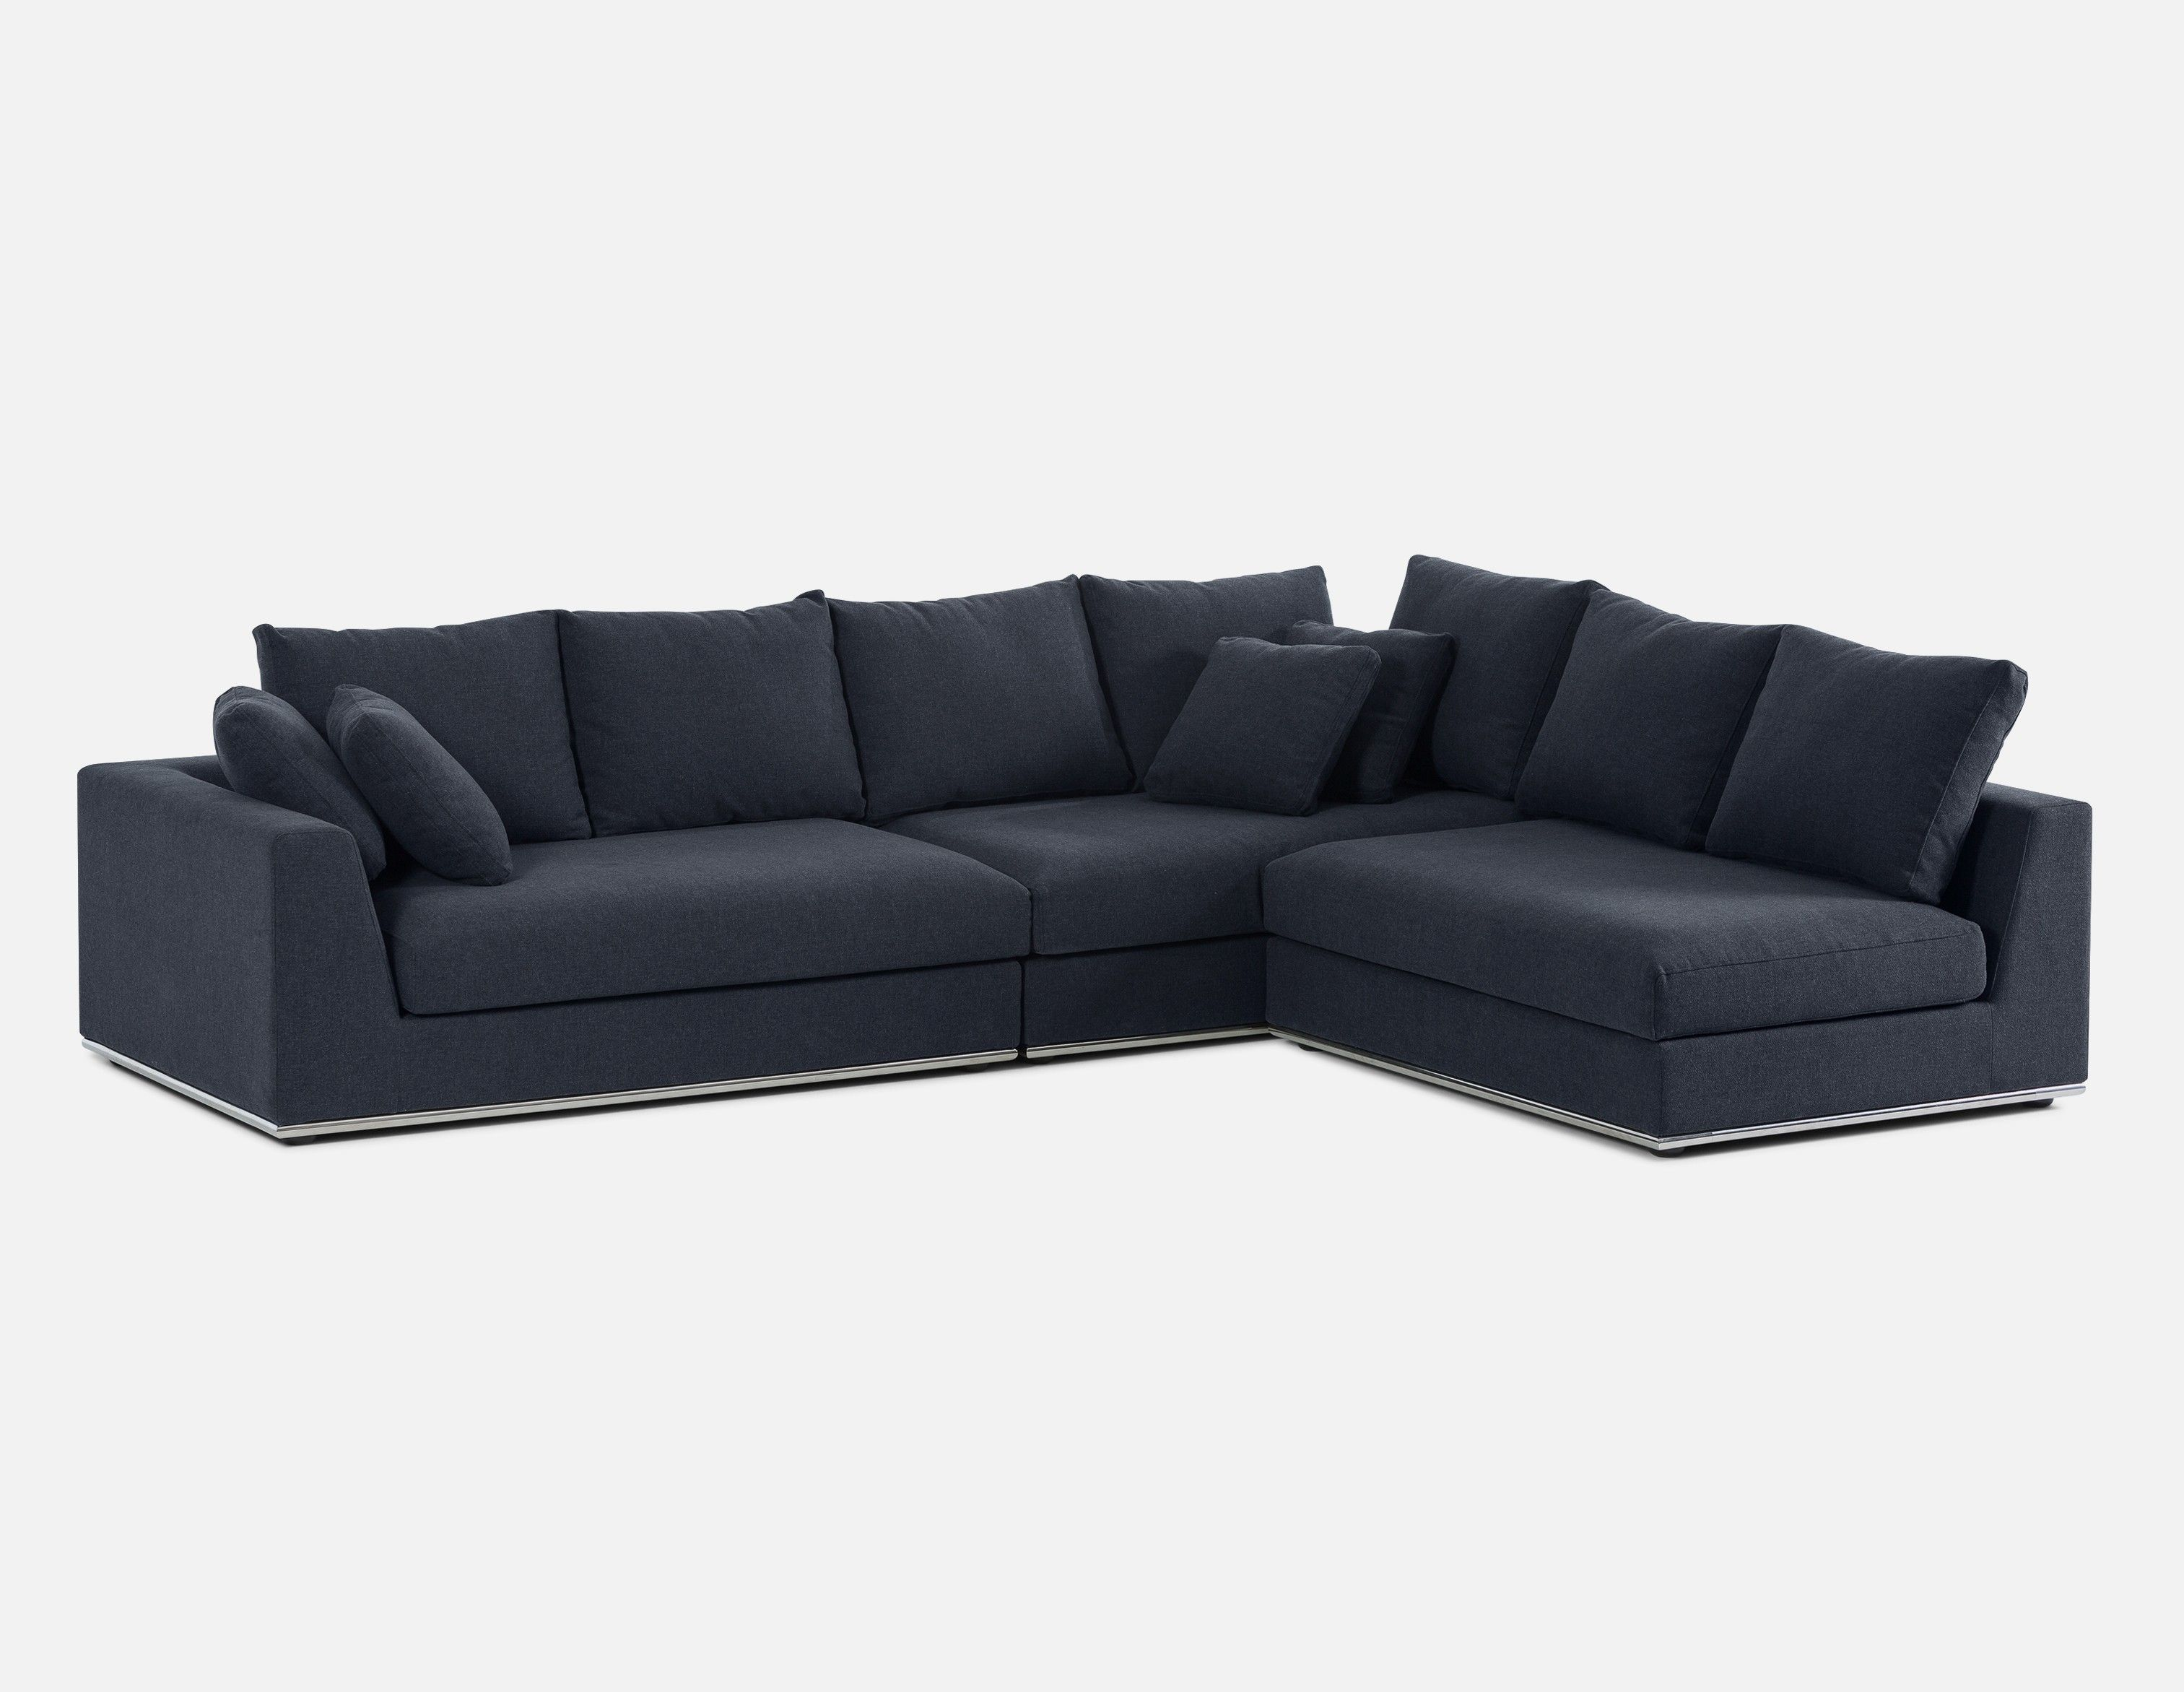 Horizon Modular Sectional Sofa Dark Blue Modular Sectional